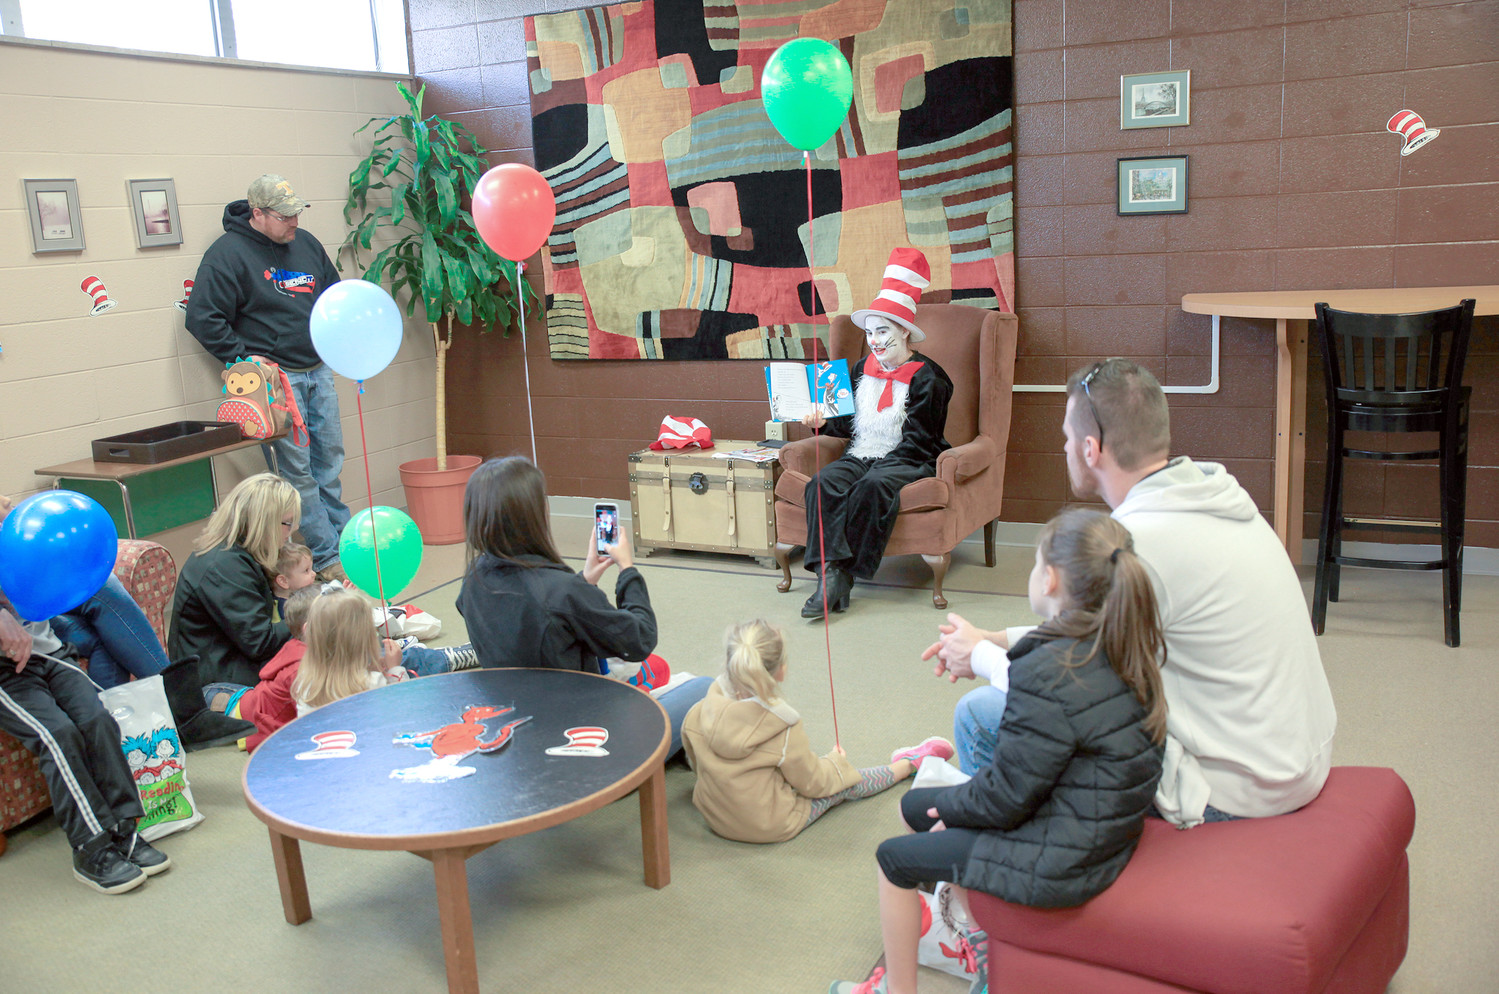 THE CAT IN THE HAT reads a story to several children and parents on Saturday during the event at CSCC.